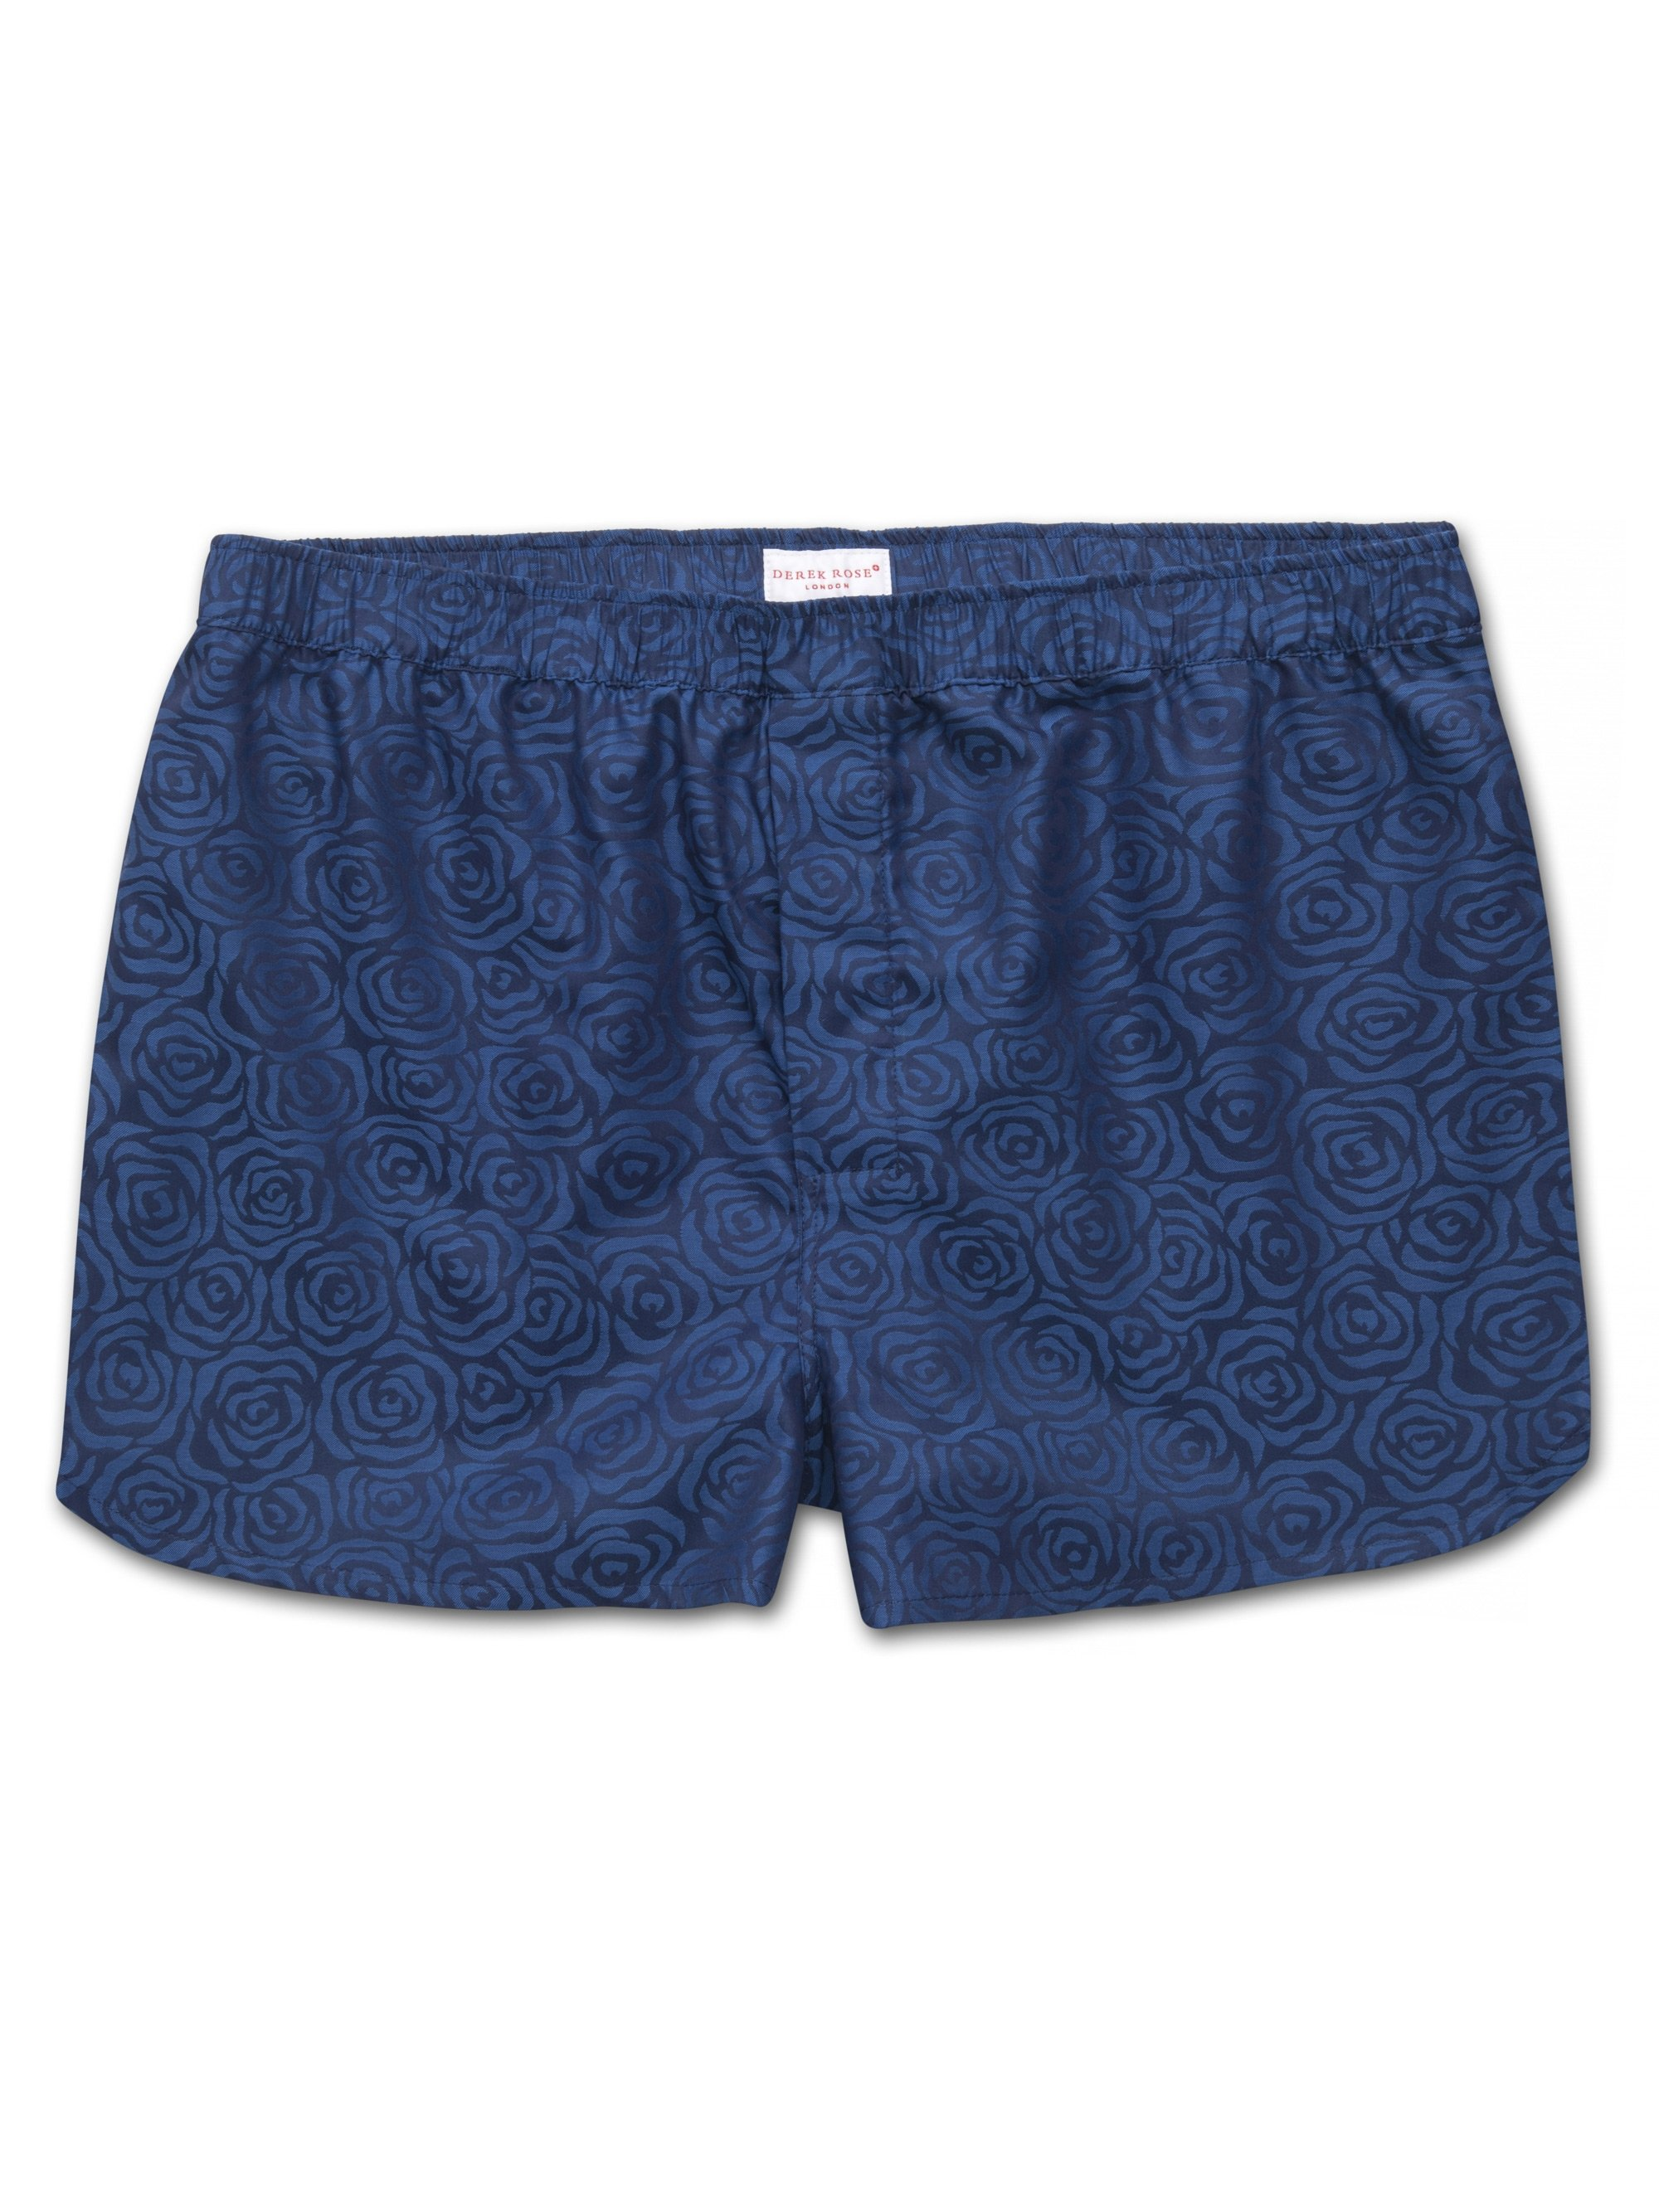 Men's Modern Fit Boxer Shorts Paris 17 Cotton Jacquard Navy